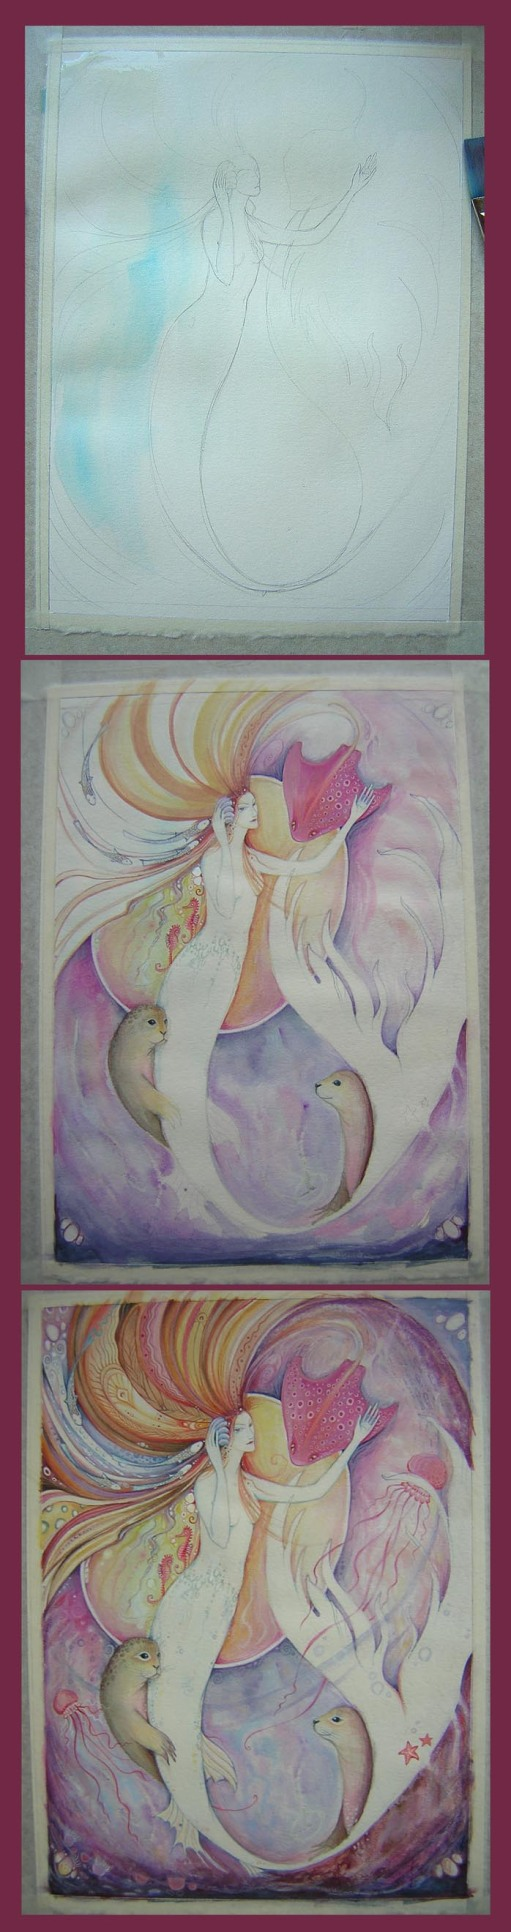 Aqualina Mermaid Painting